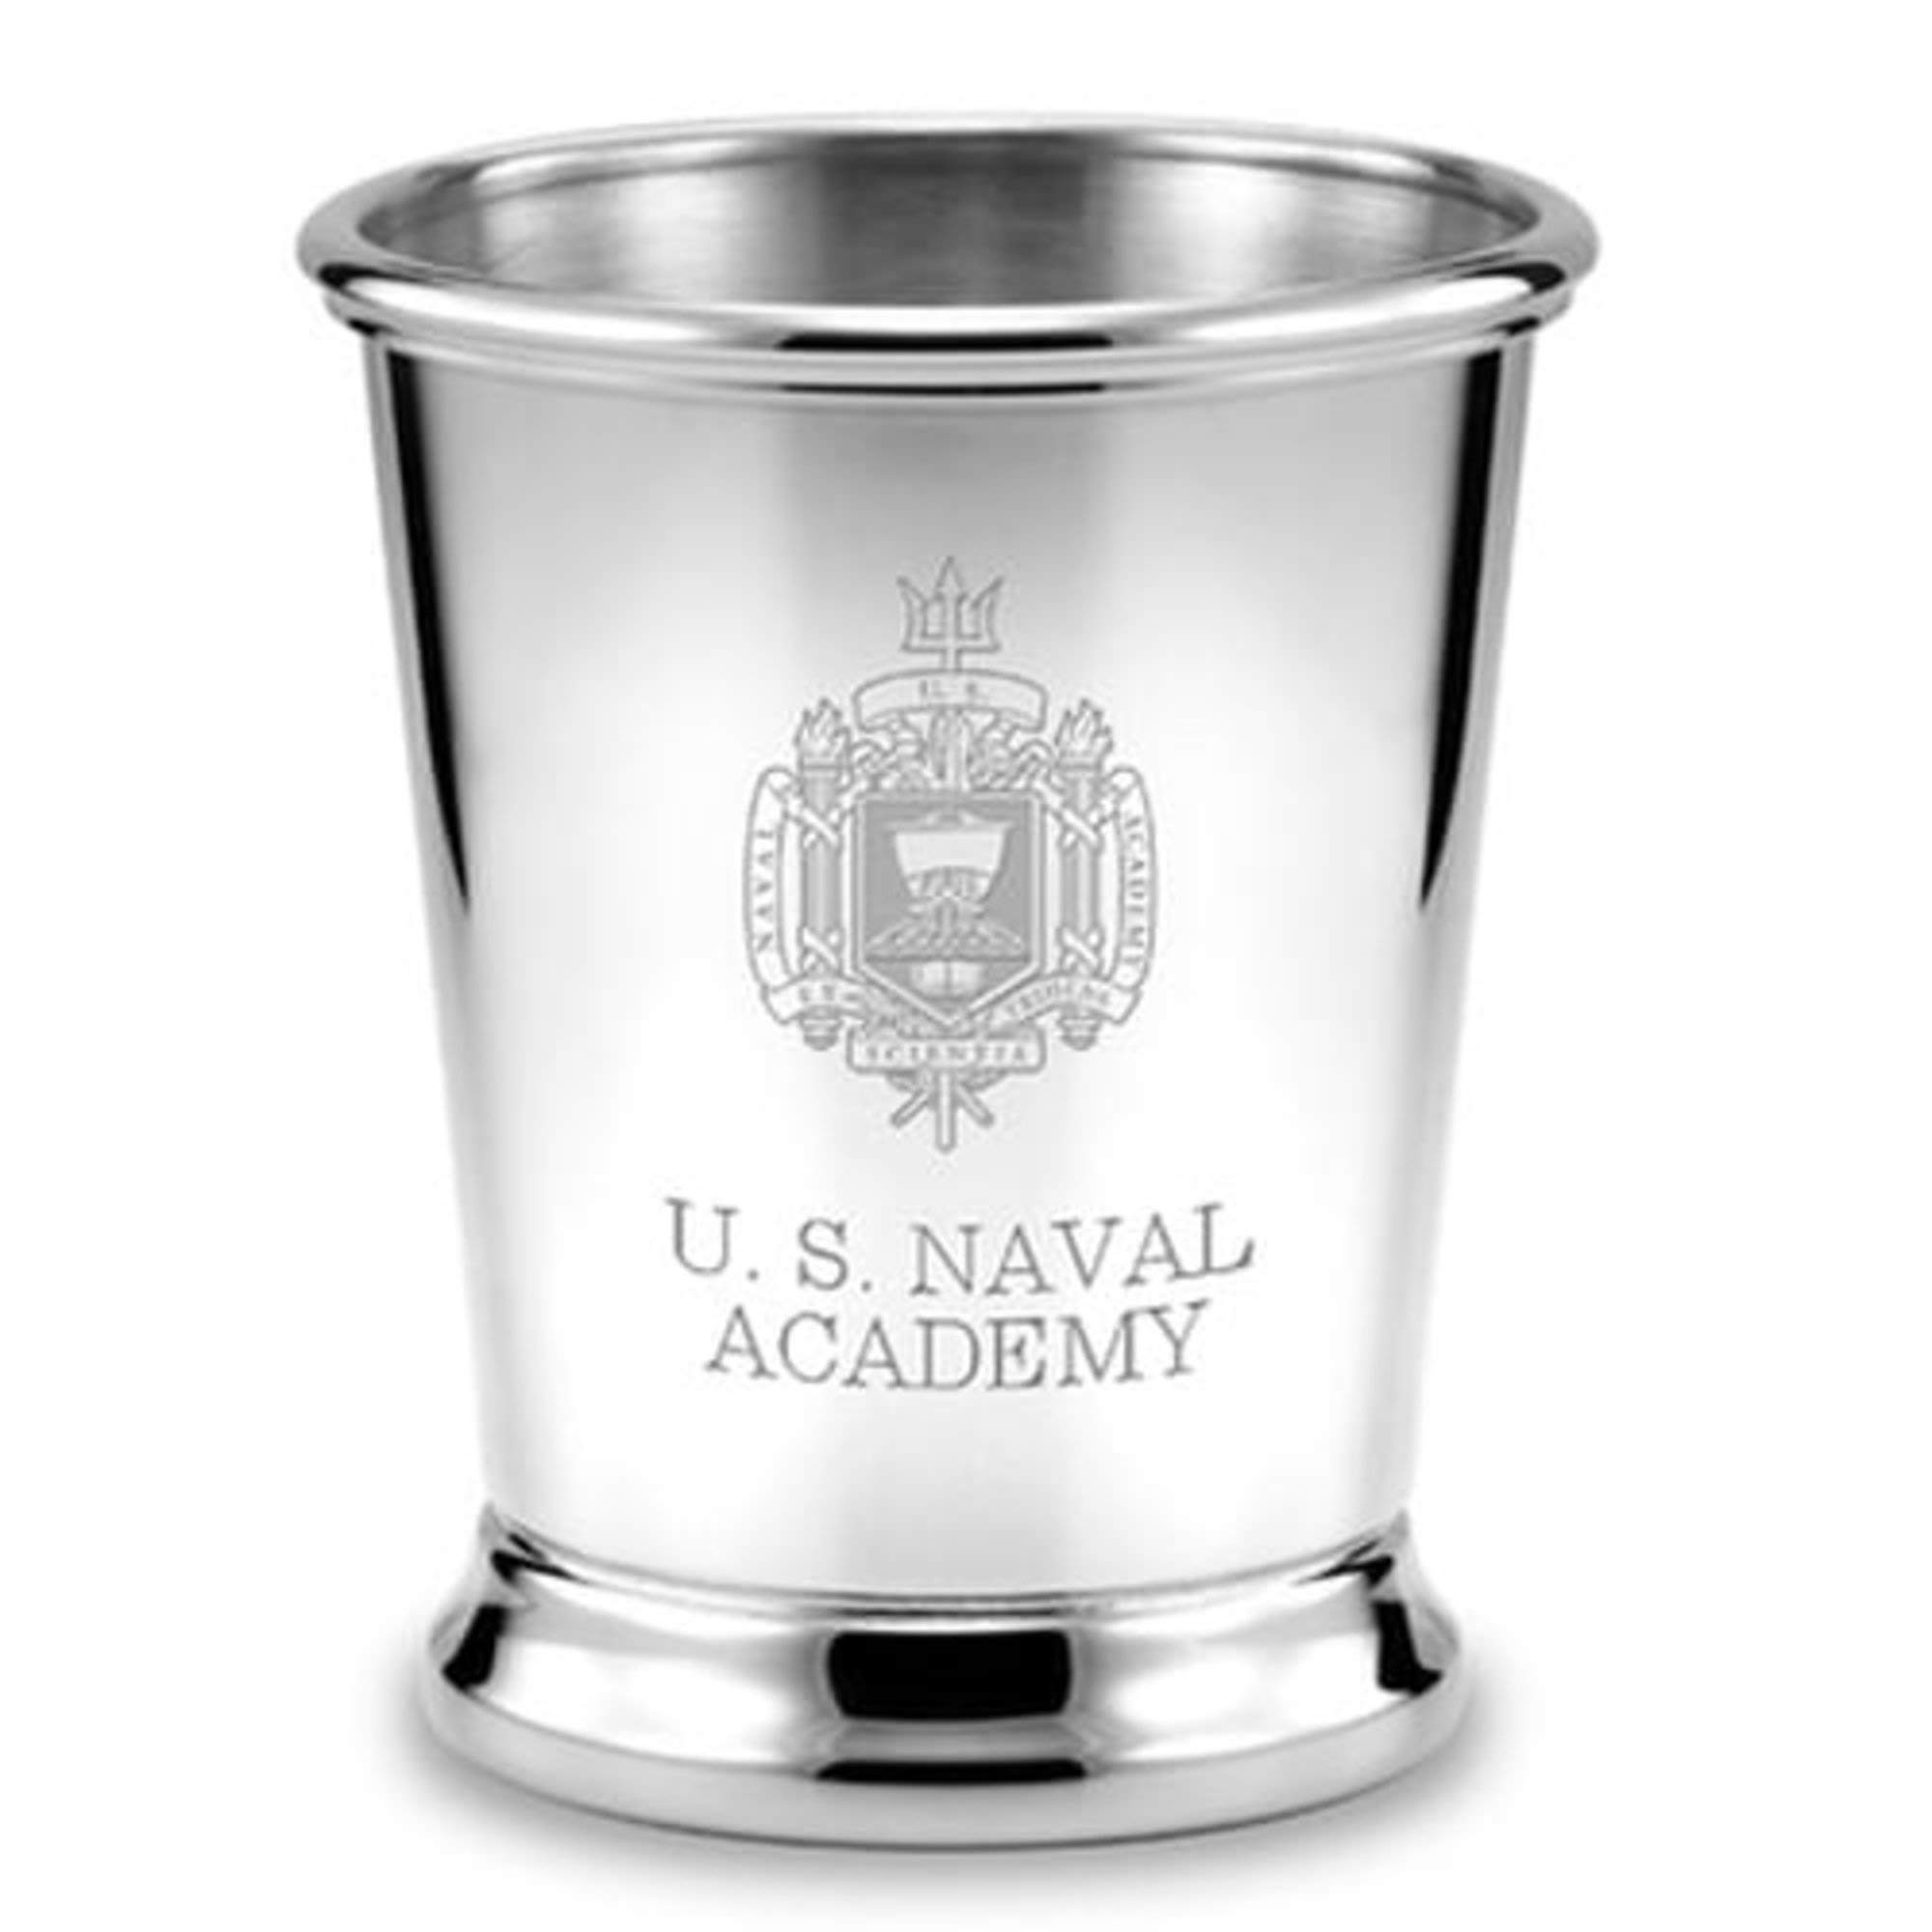 M. LA HART Naval Academy Pewter Julep Cup